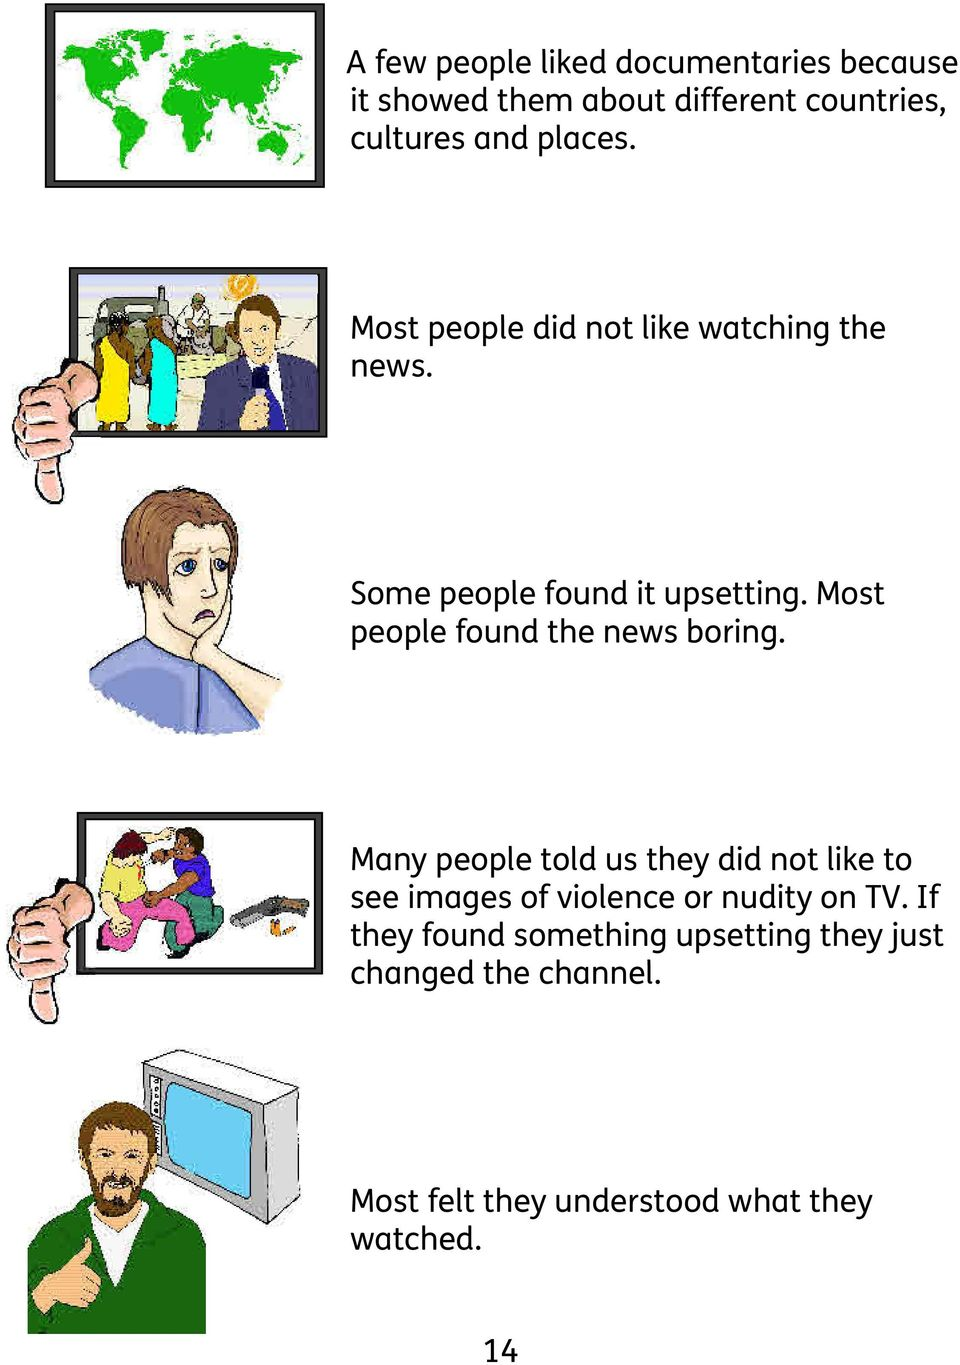 Most people found the news boring.